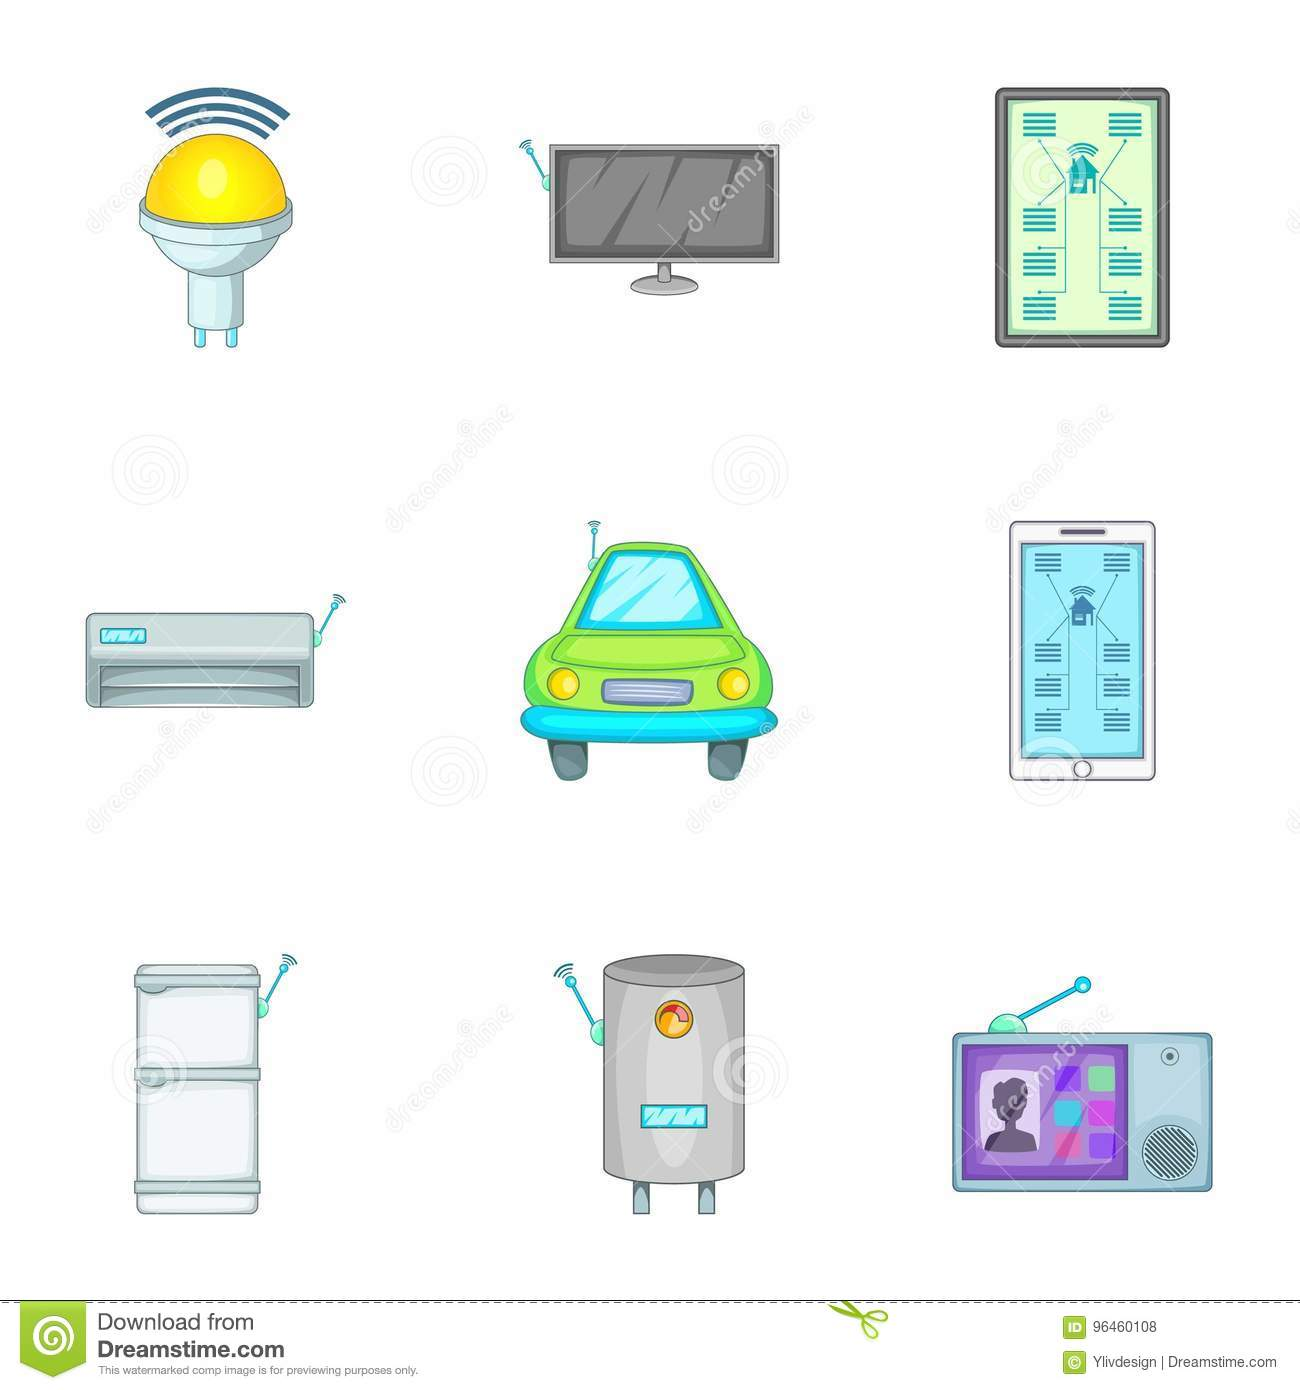 smart home devices icons set cartoon style stock vector image 96460108. Black Bedroom Furniture Sets. Home Design Ideas